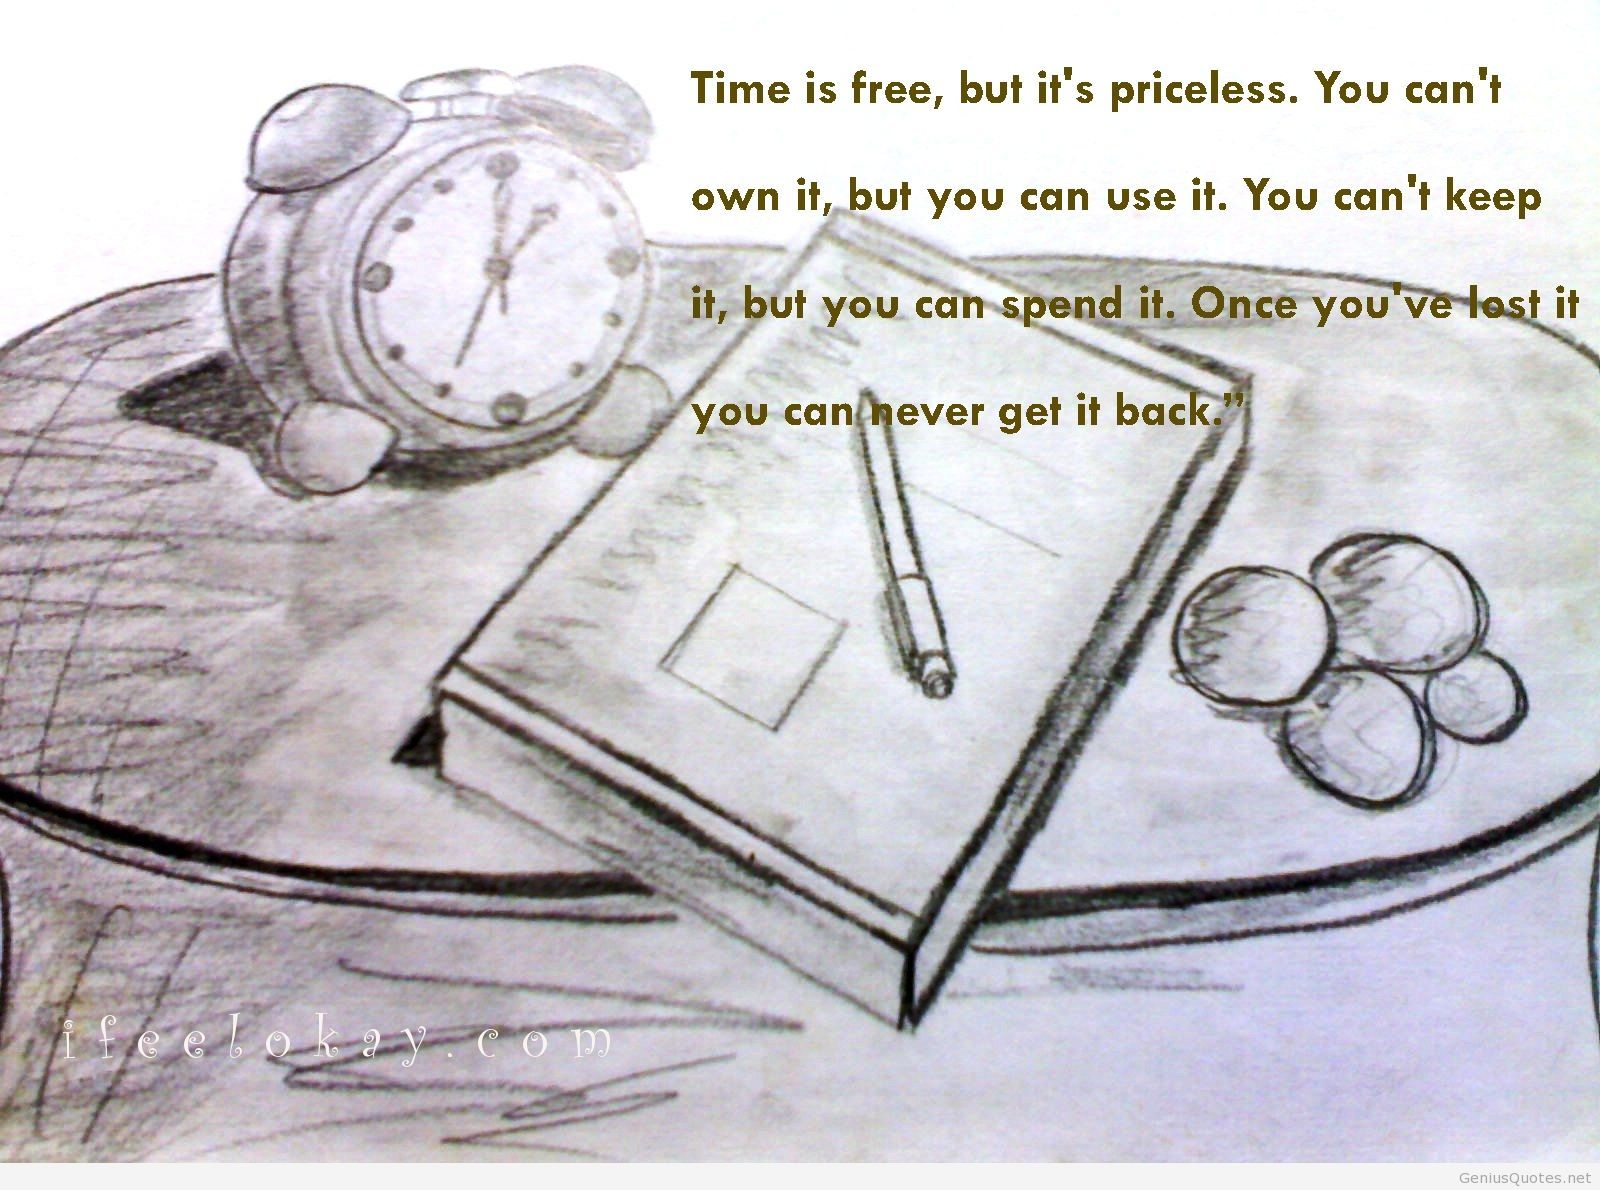 Time is free, fragile, but priceless